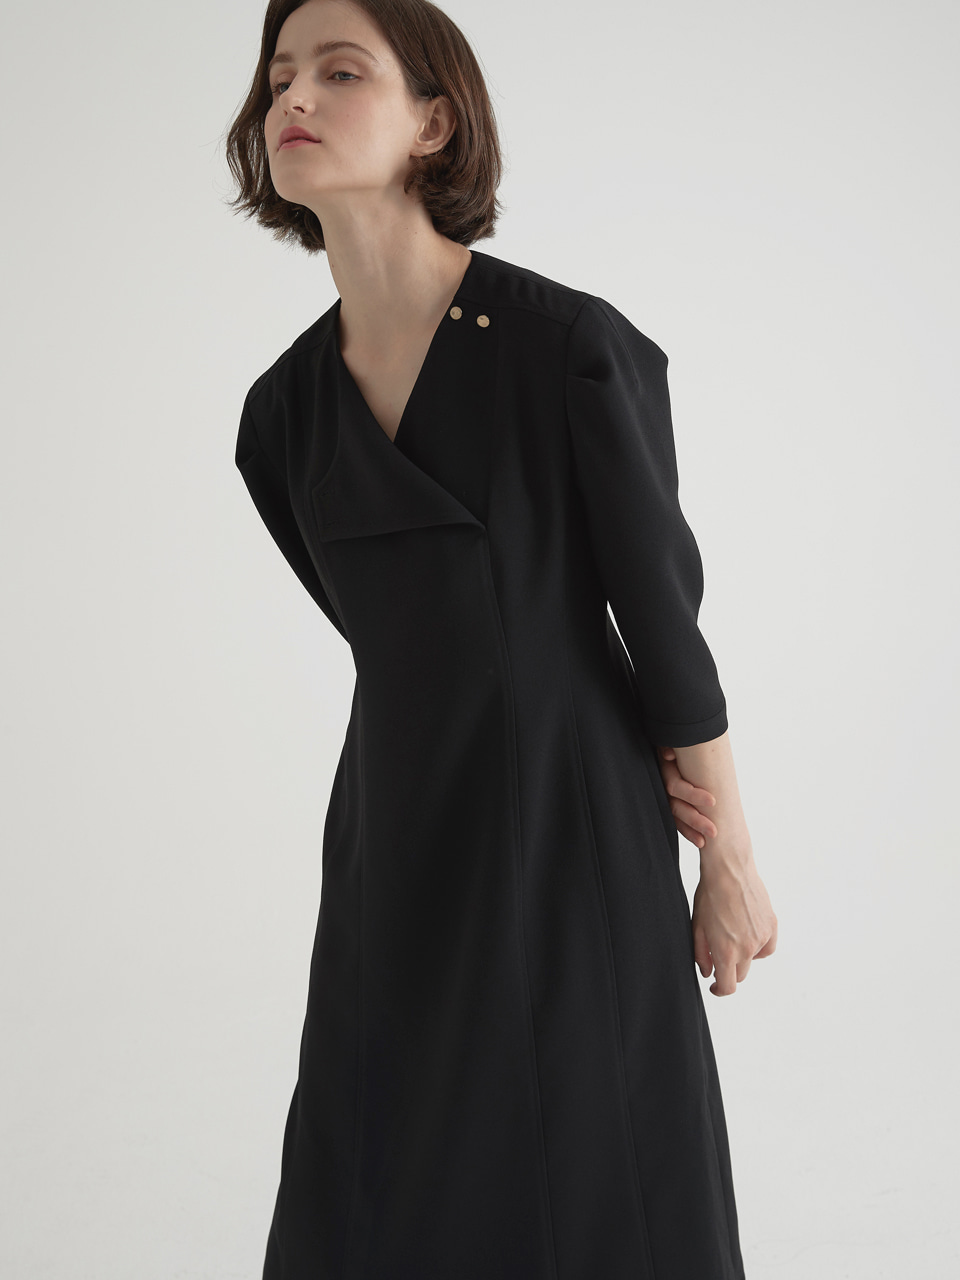 [2/5예약배송]2 way neckline one-piece - Black